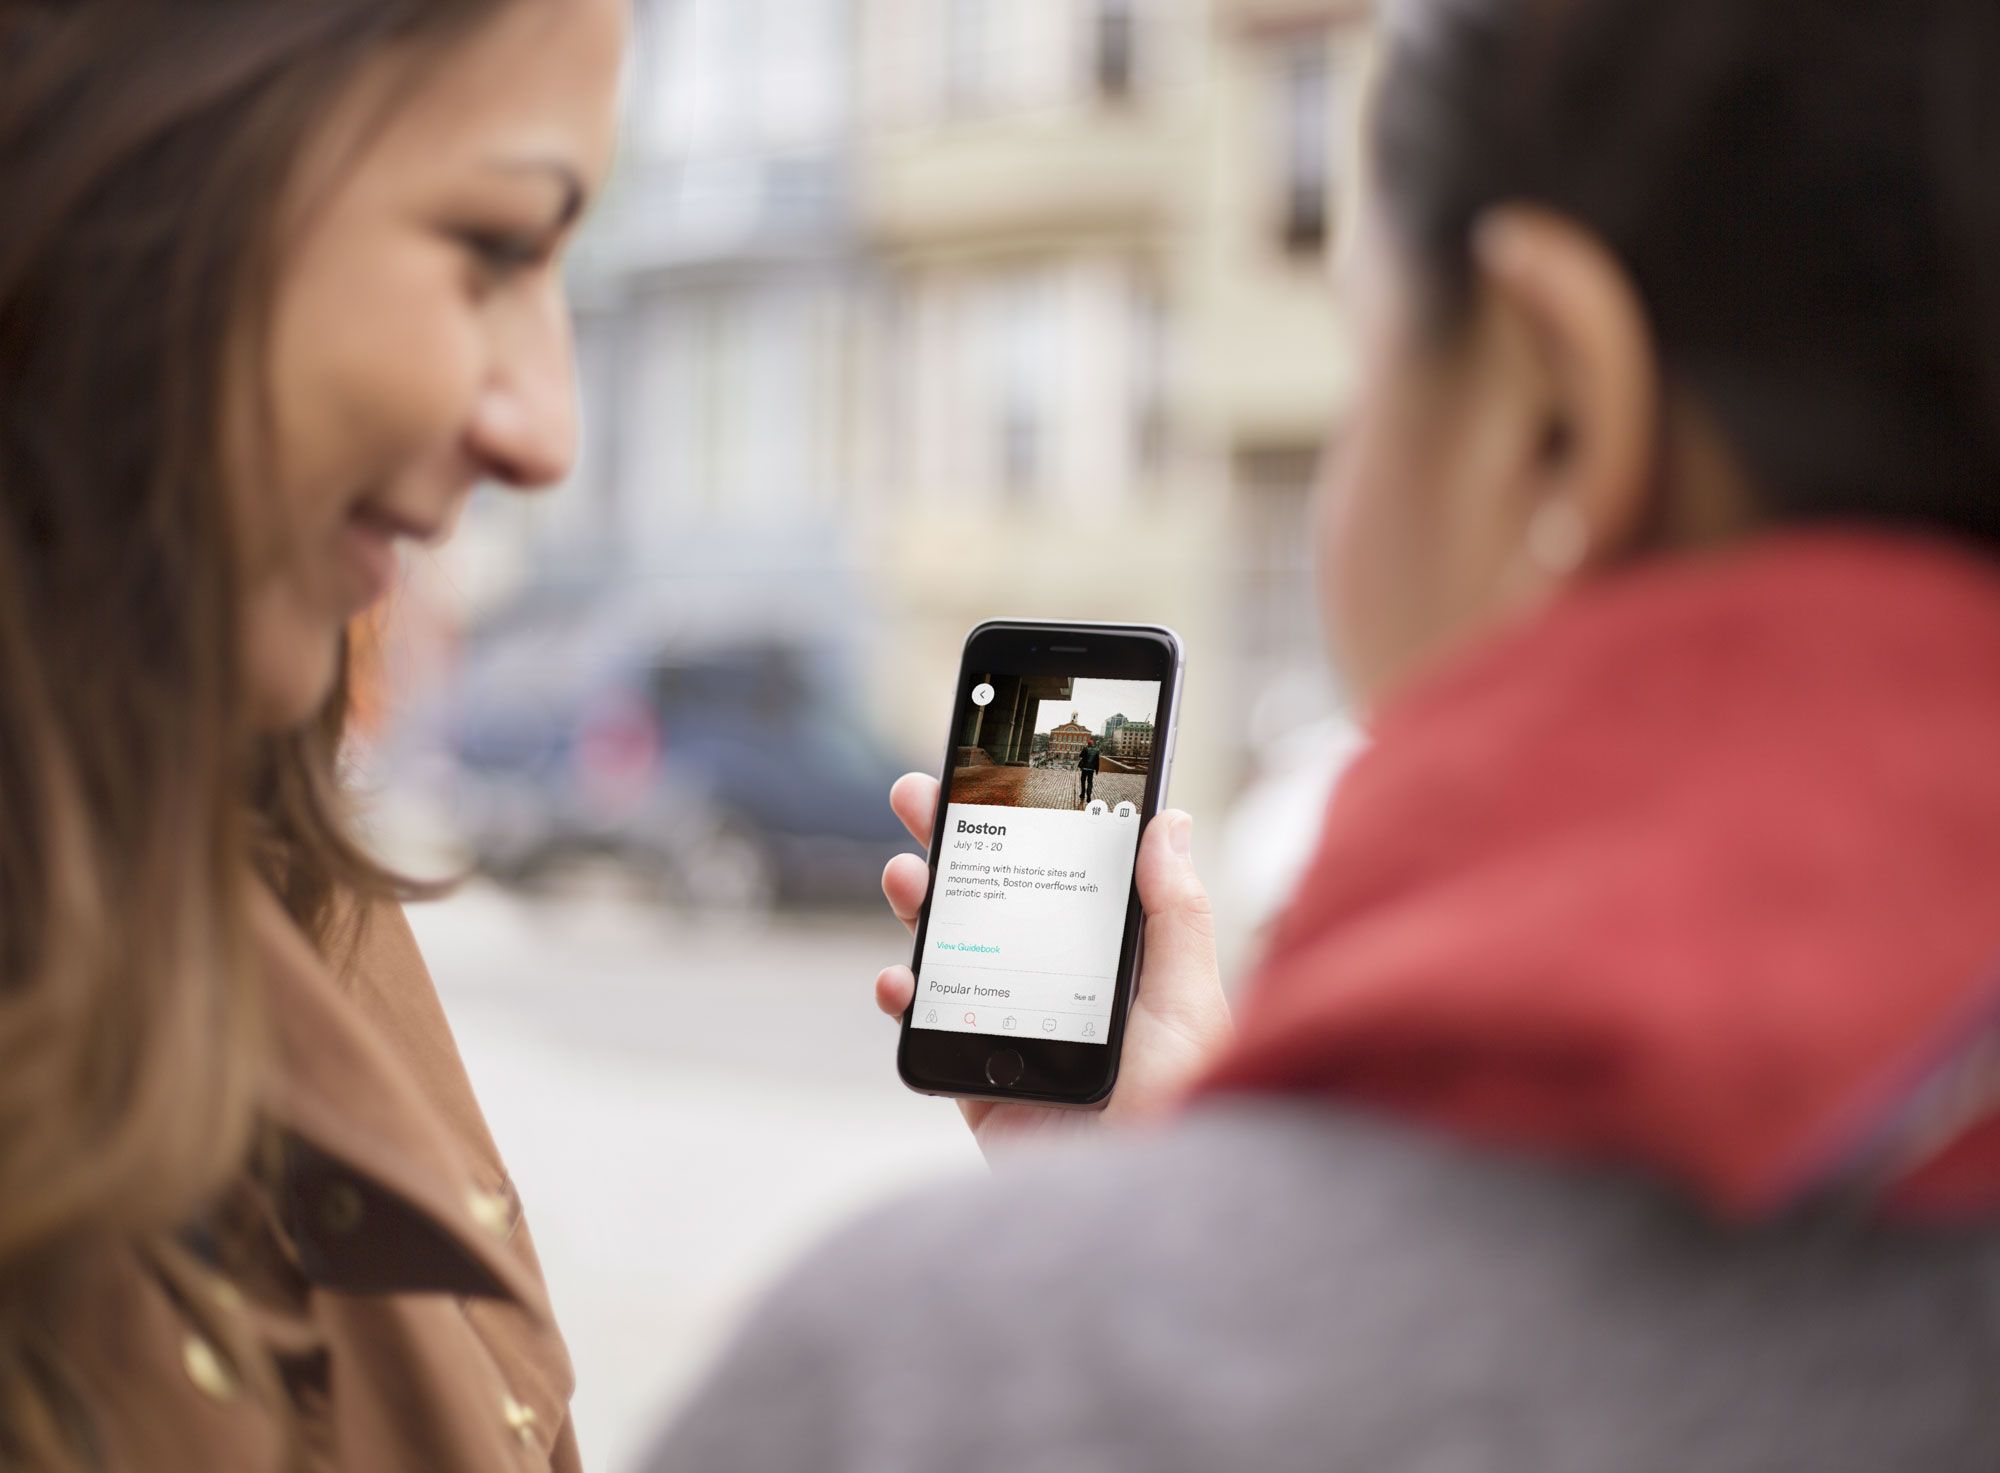 Airbnb pushes into tourism with travel recommendations and guidebooks.